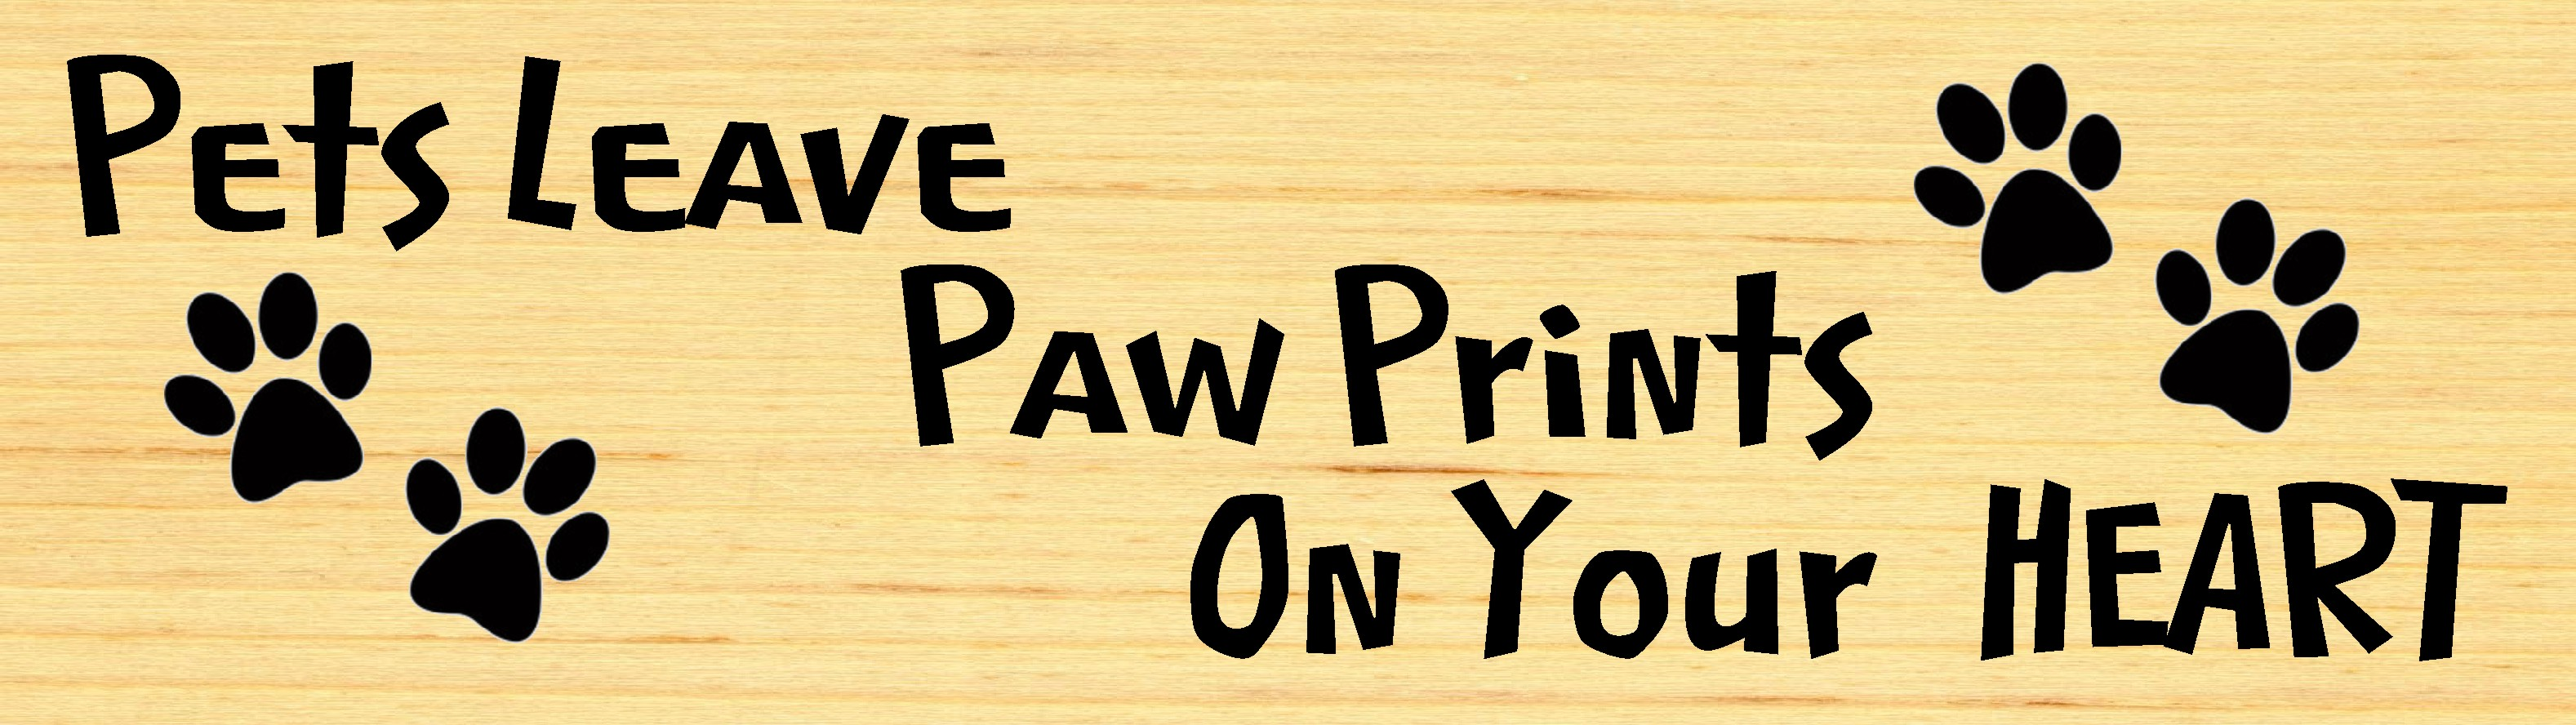 "PETS LEAVE PAW PRINTS ON YOUR HEART 10.5"" X 3"" WOODEN BLOCK SIGN"